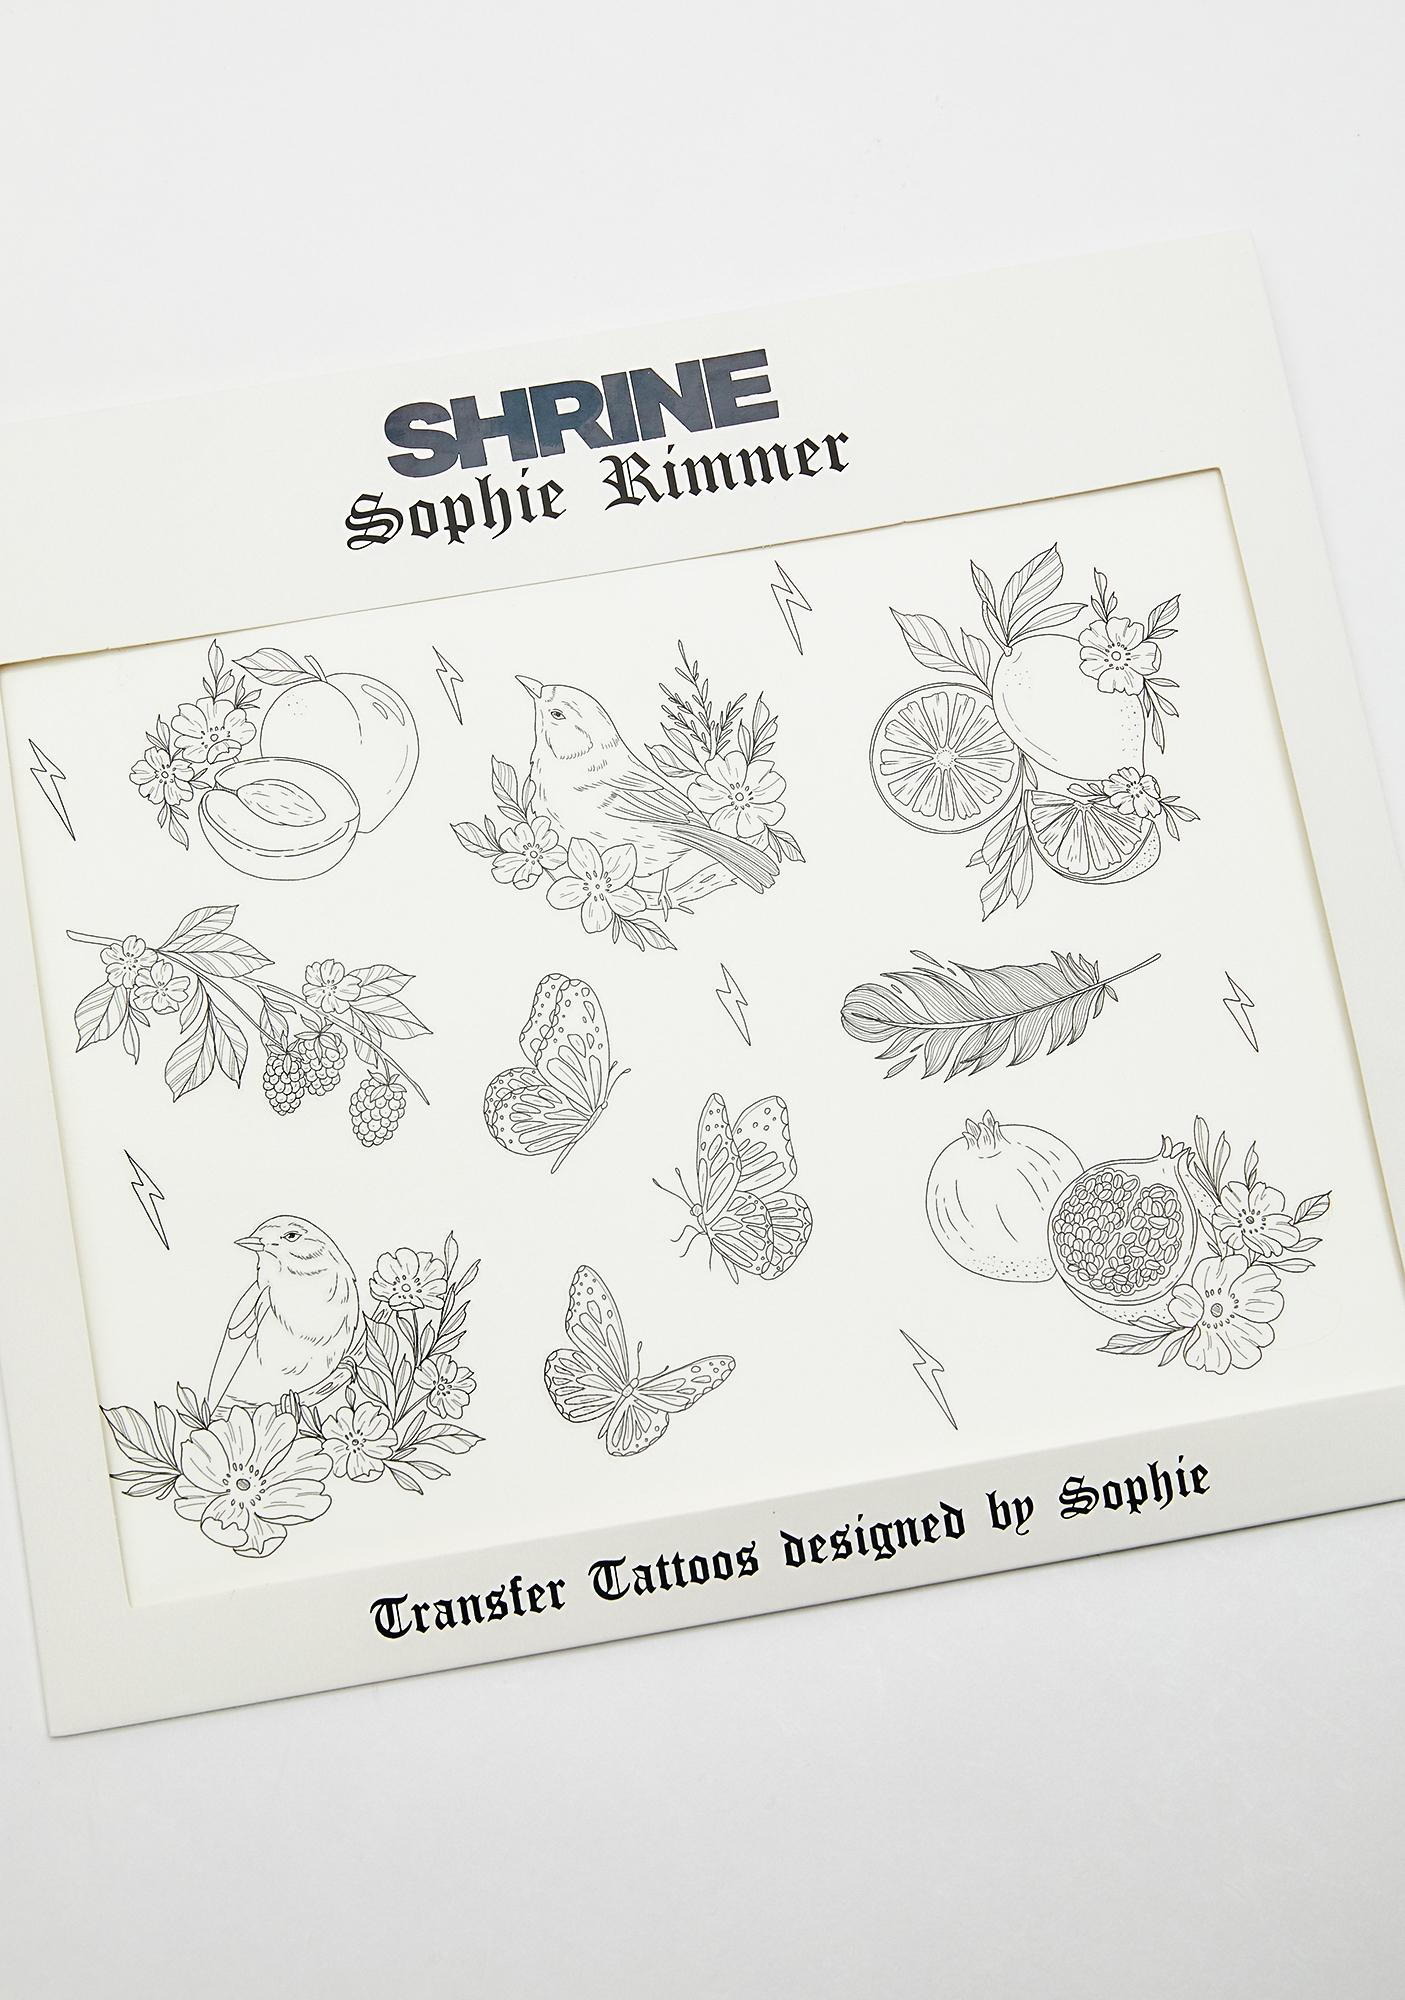 Shrine x Sophie Rimmer Birds Tattoos